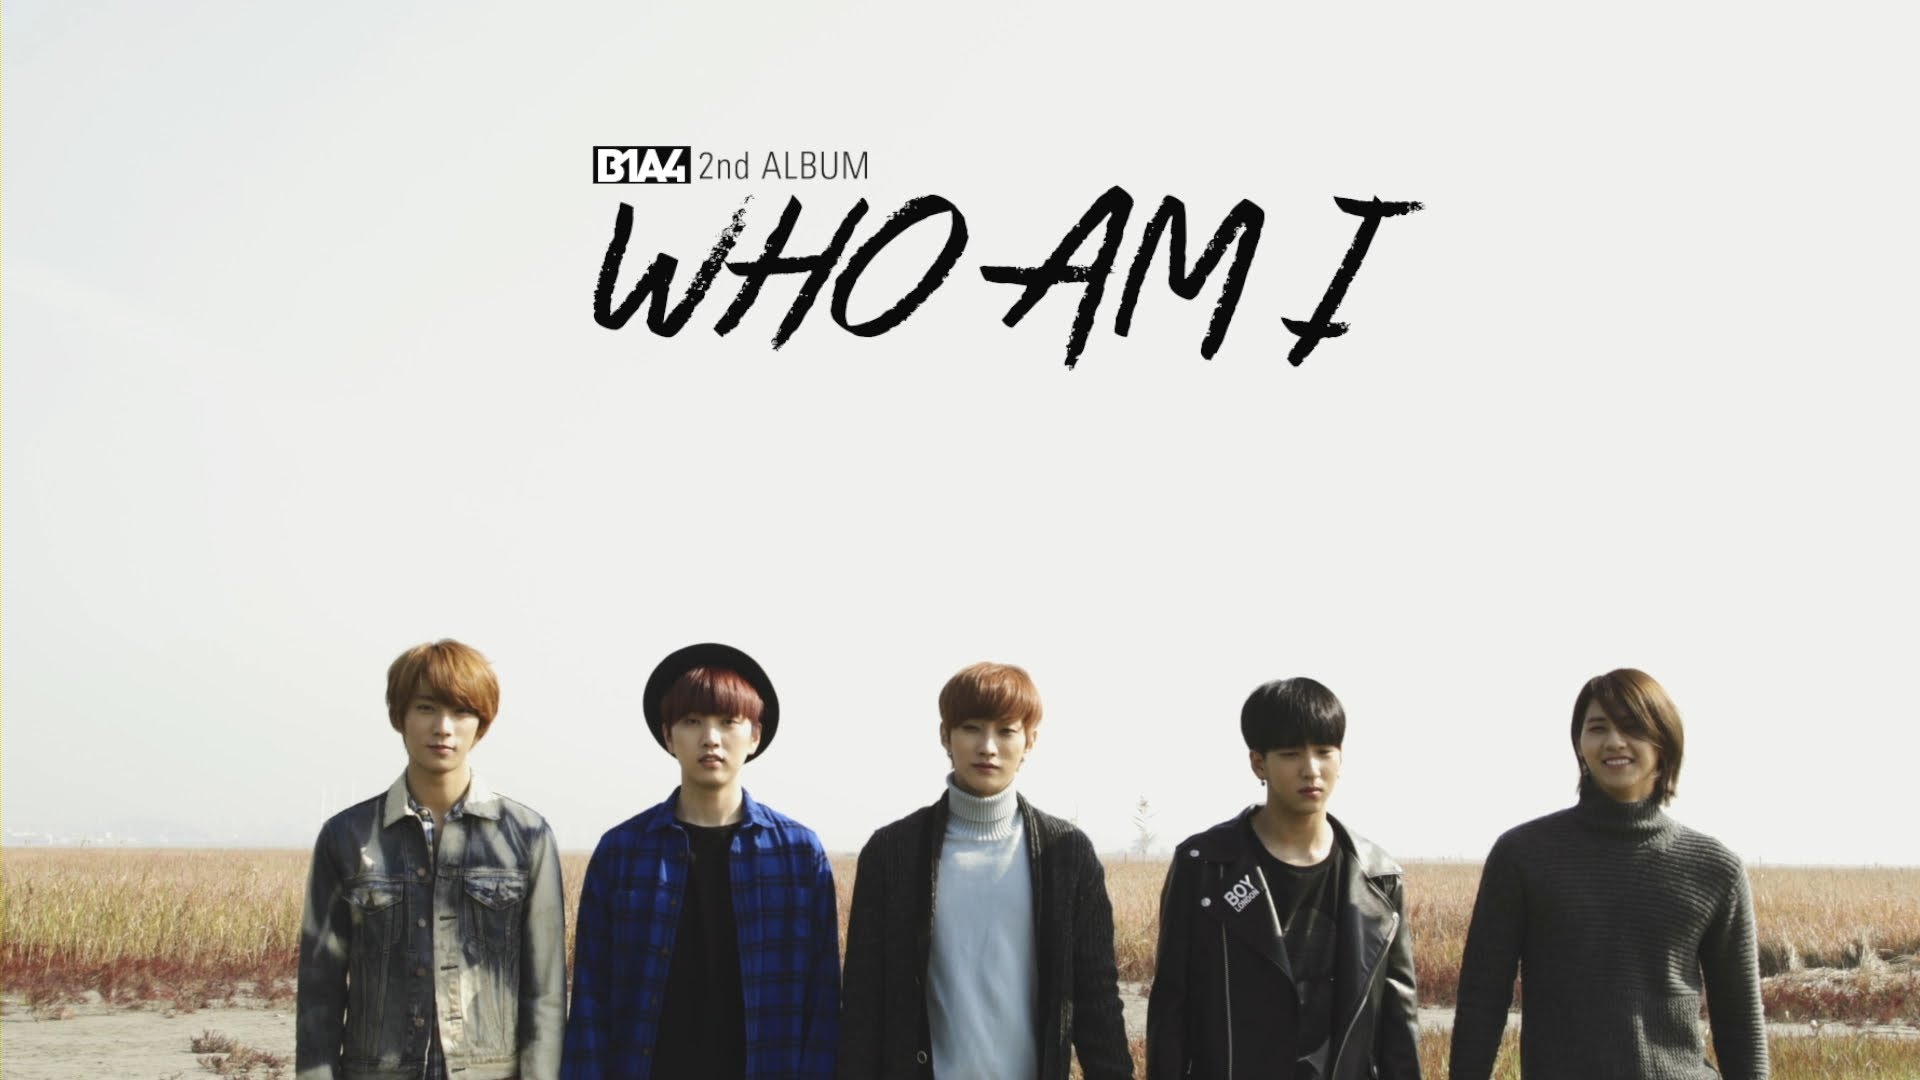 All for One  B1A4  Wiki B1a4 Lonely Wallpaper